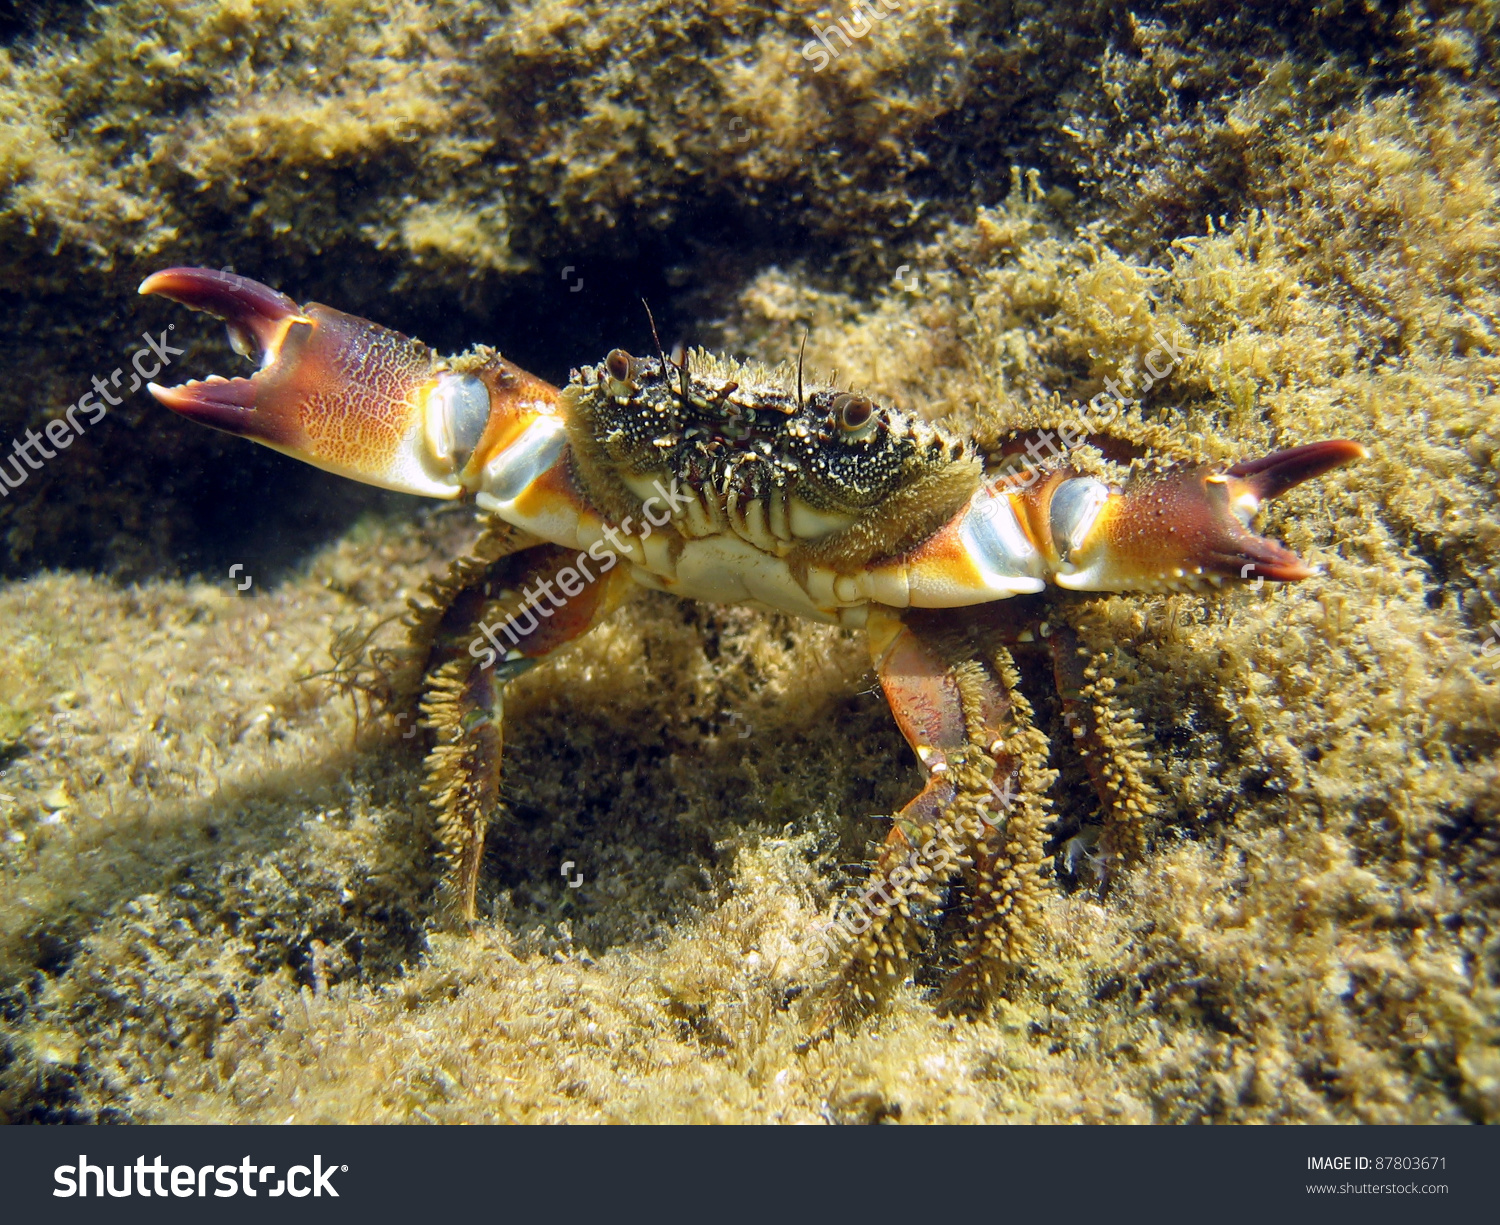 Underwater View Of Warty Crab, Eriphia Verrucosa, On Defensive.